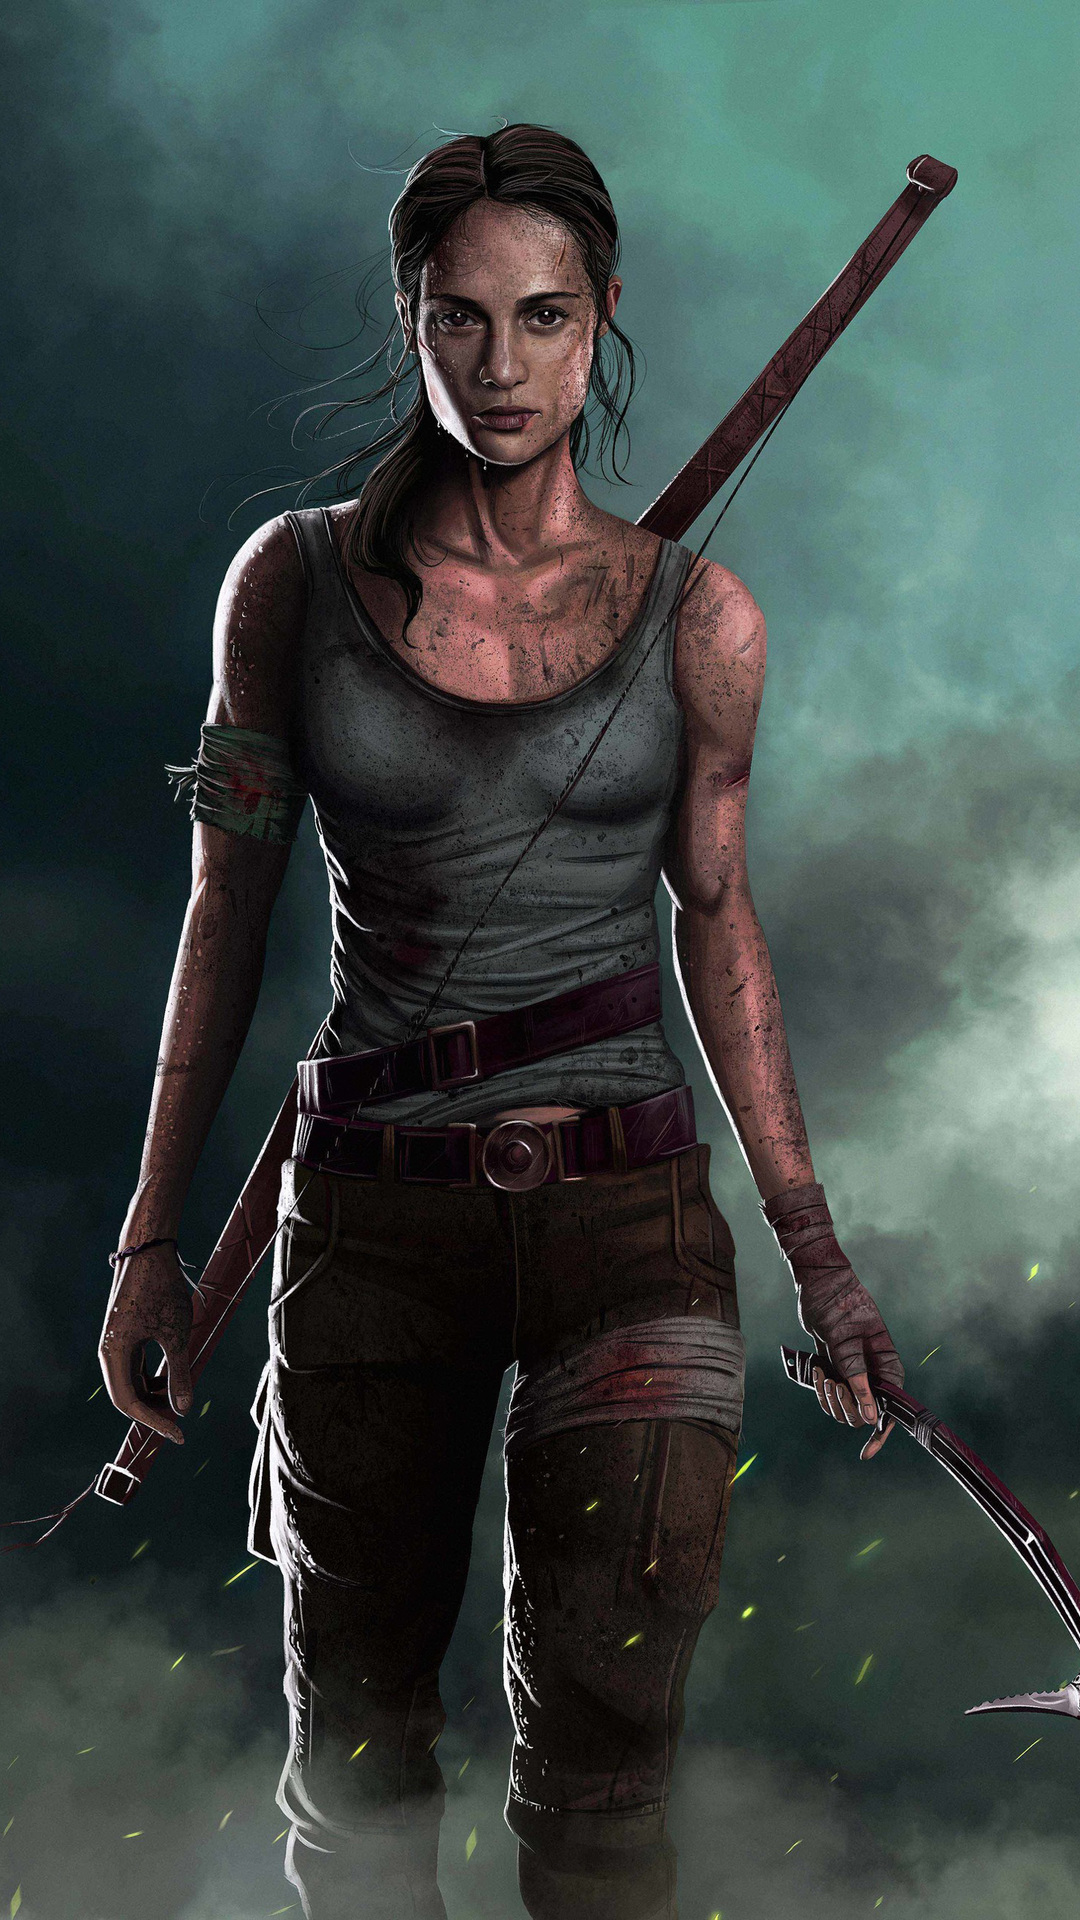 Inspirational feature: Tomb Raider Concept art by